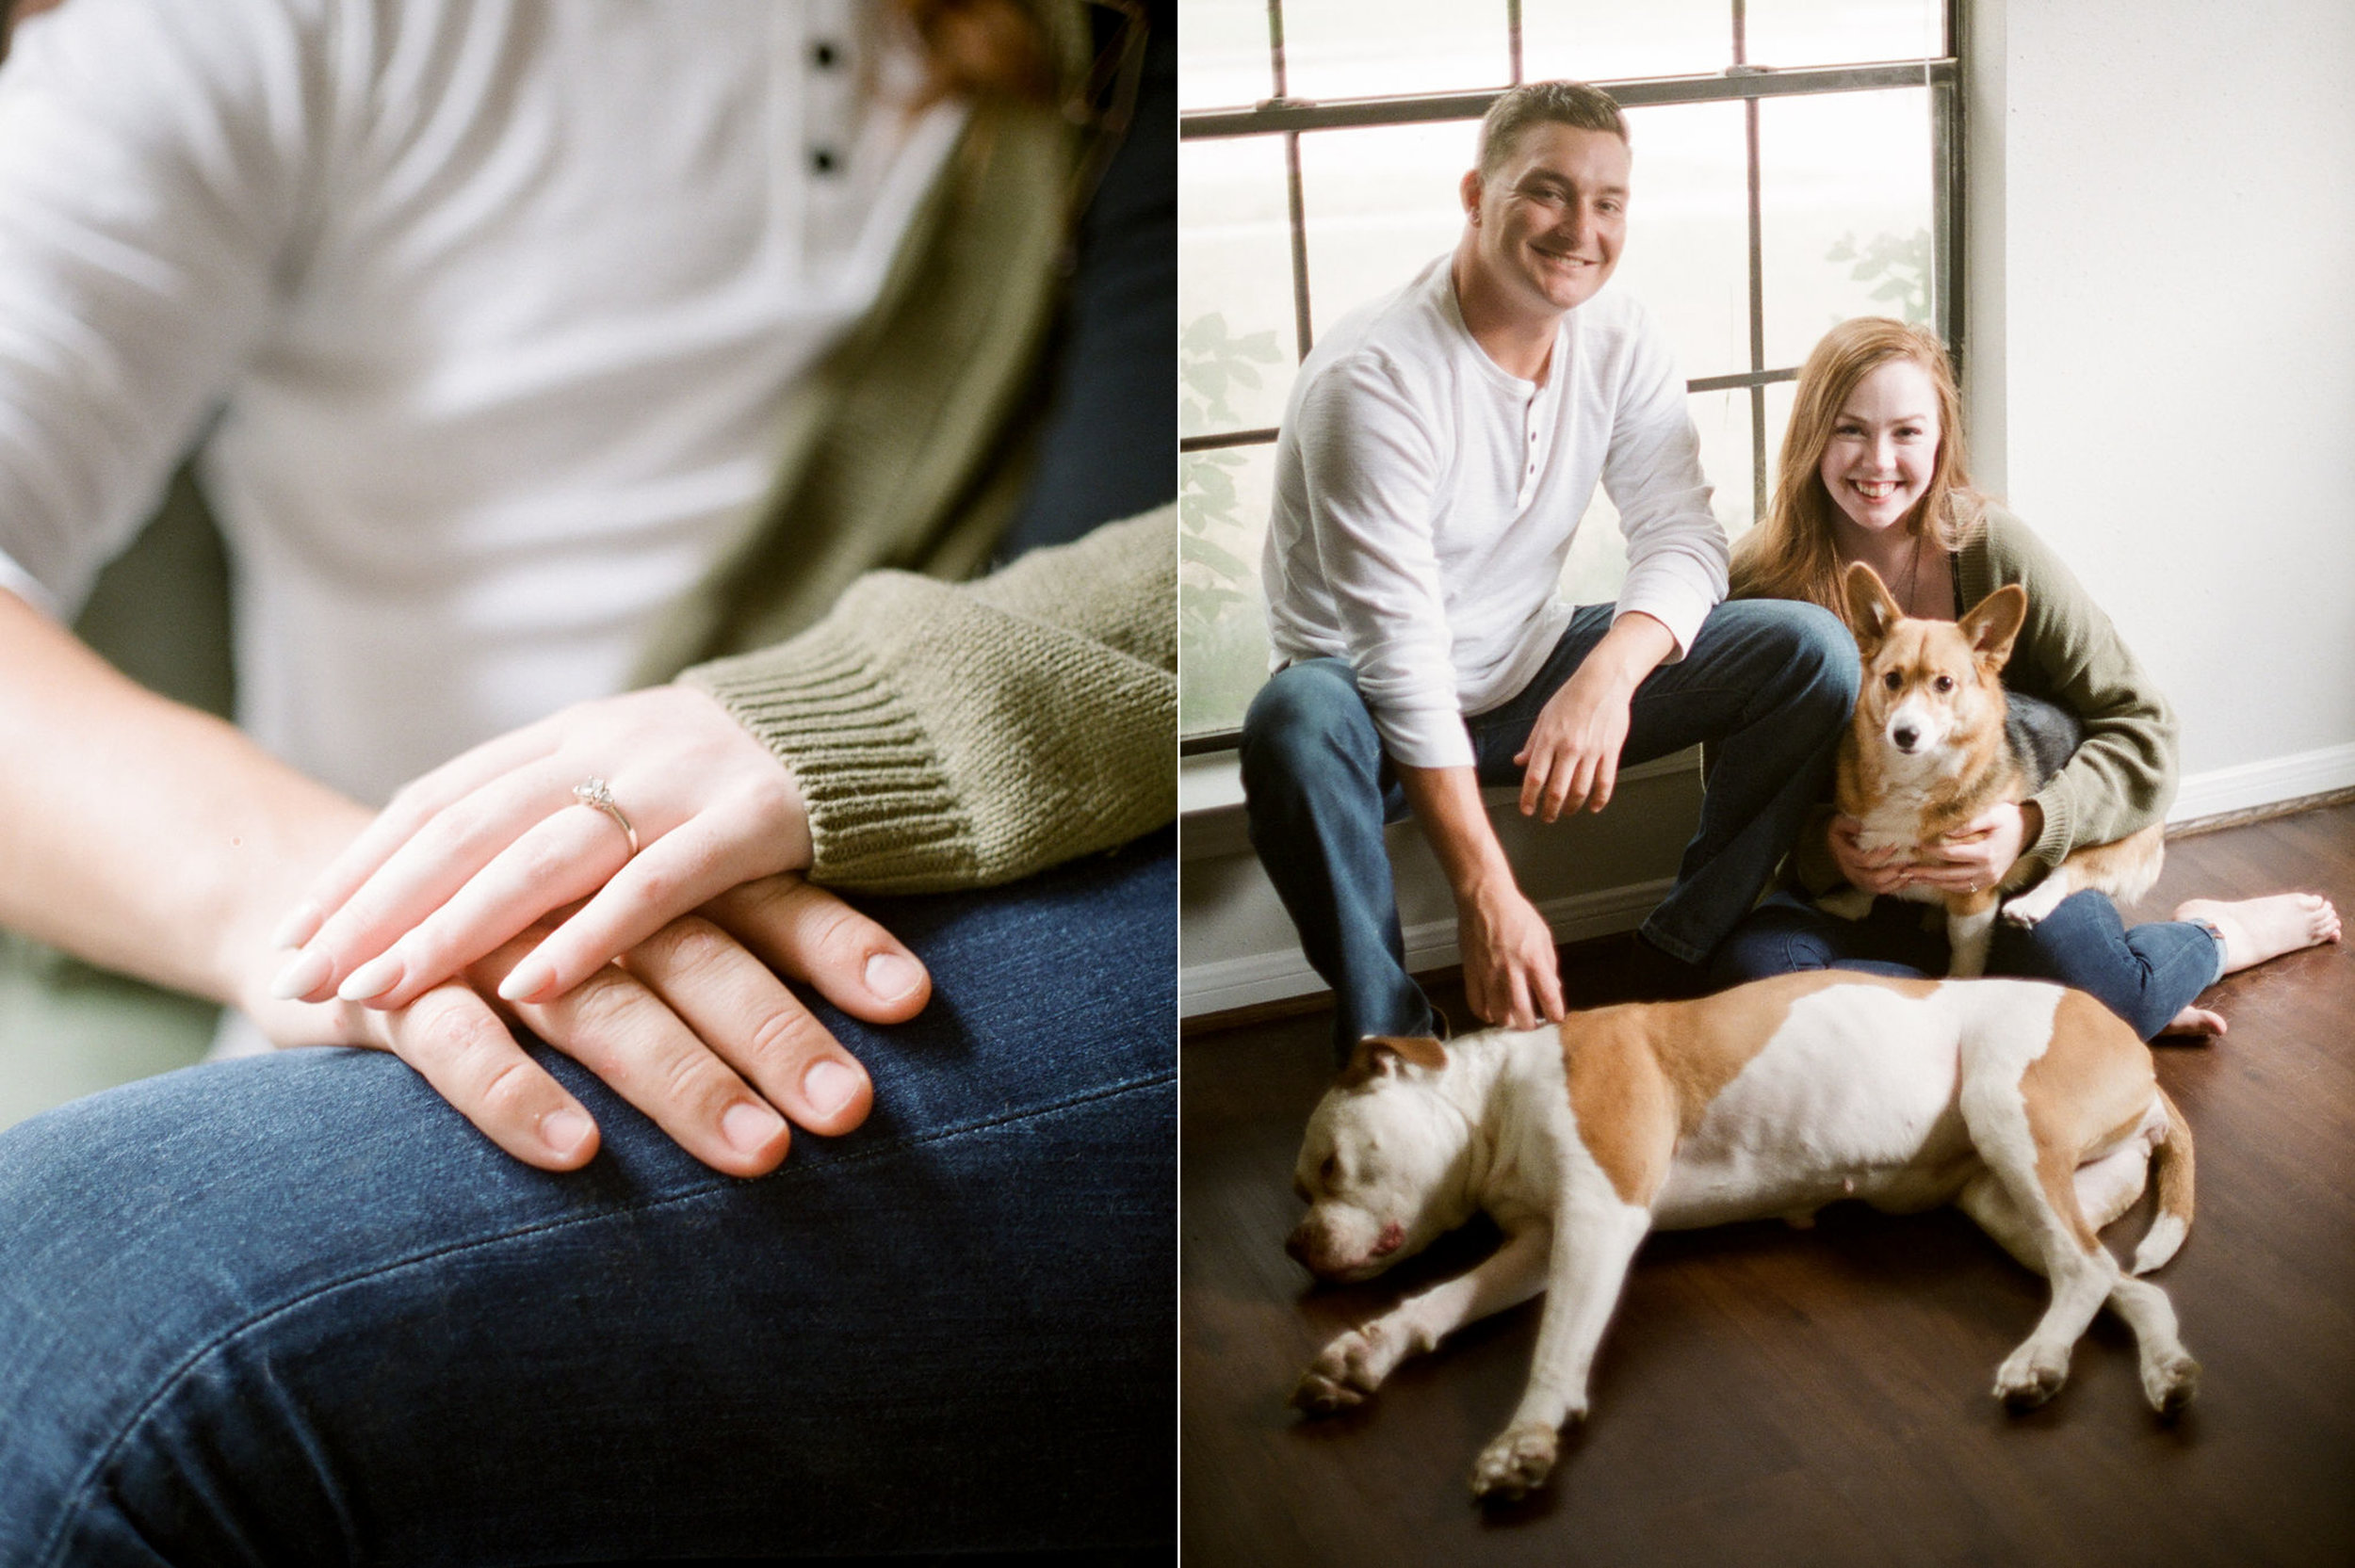 in home engagement session - film photographer - houston wedding photographer-9.jpg